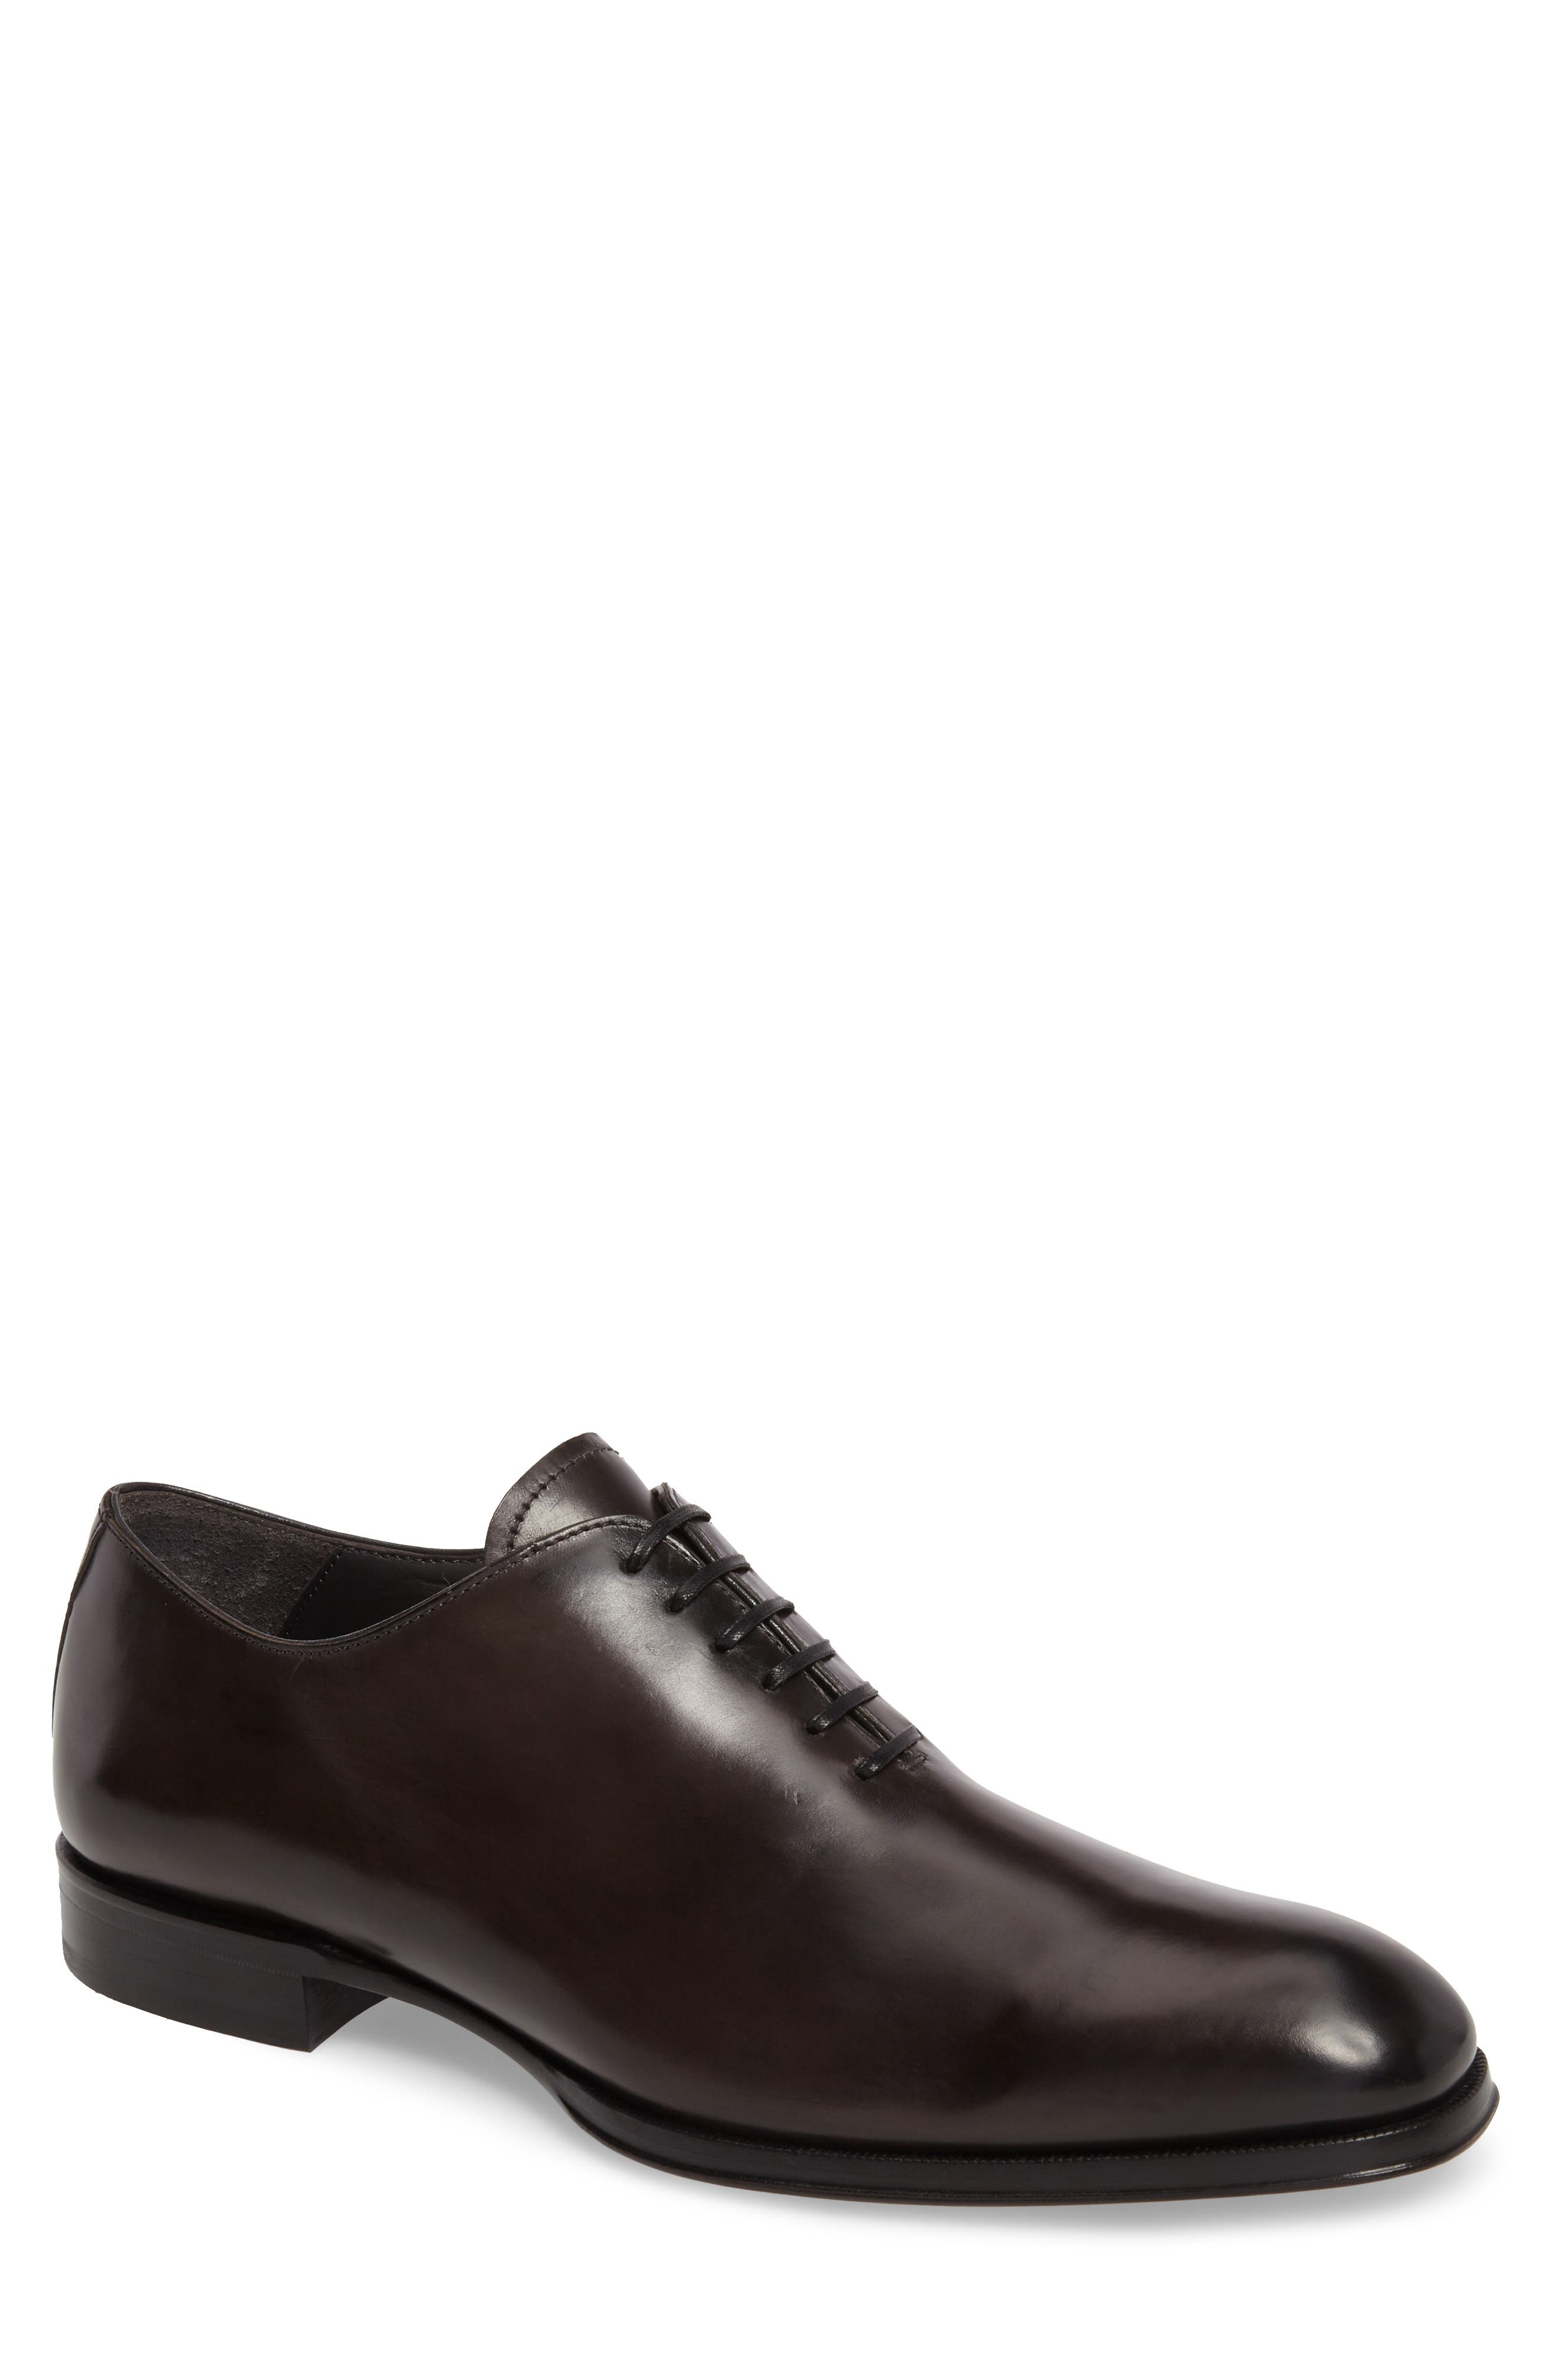 TO BOOT NEW YORK Wholecut Oxford